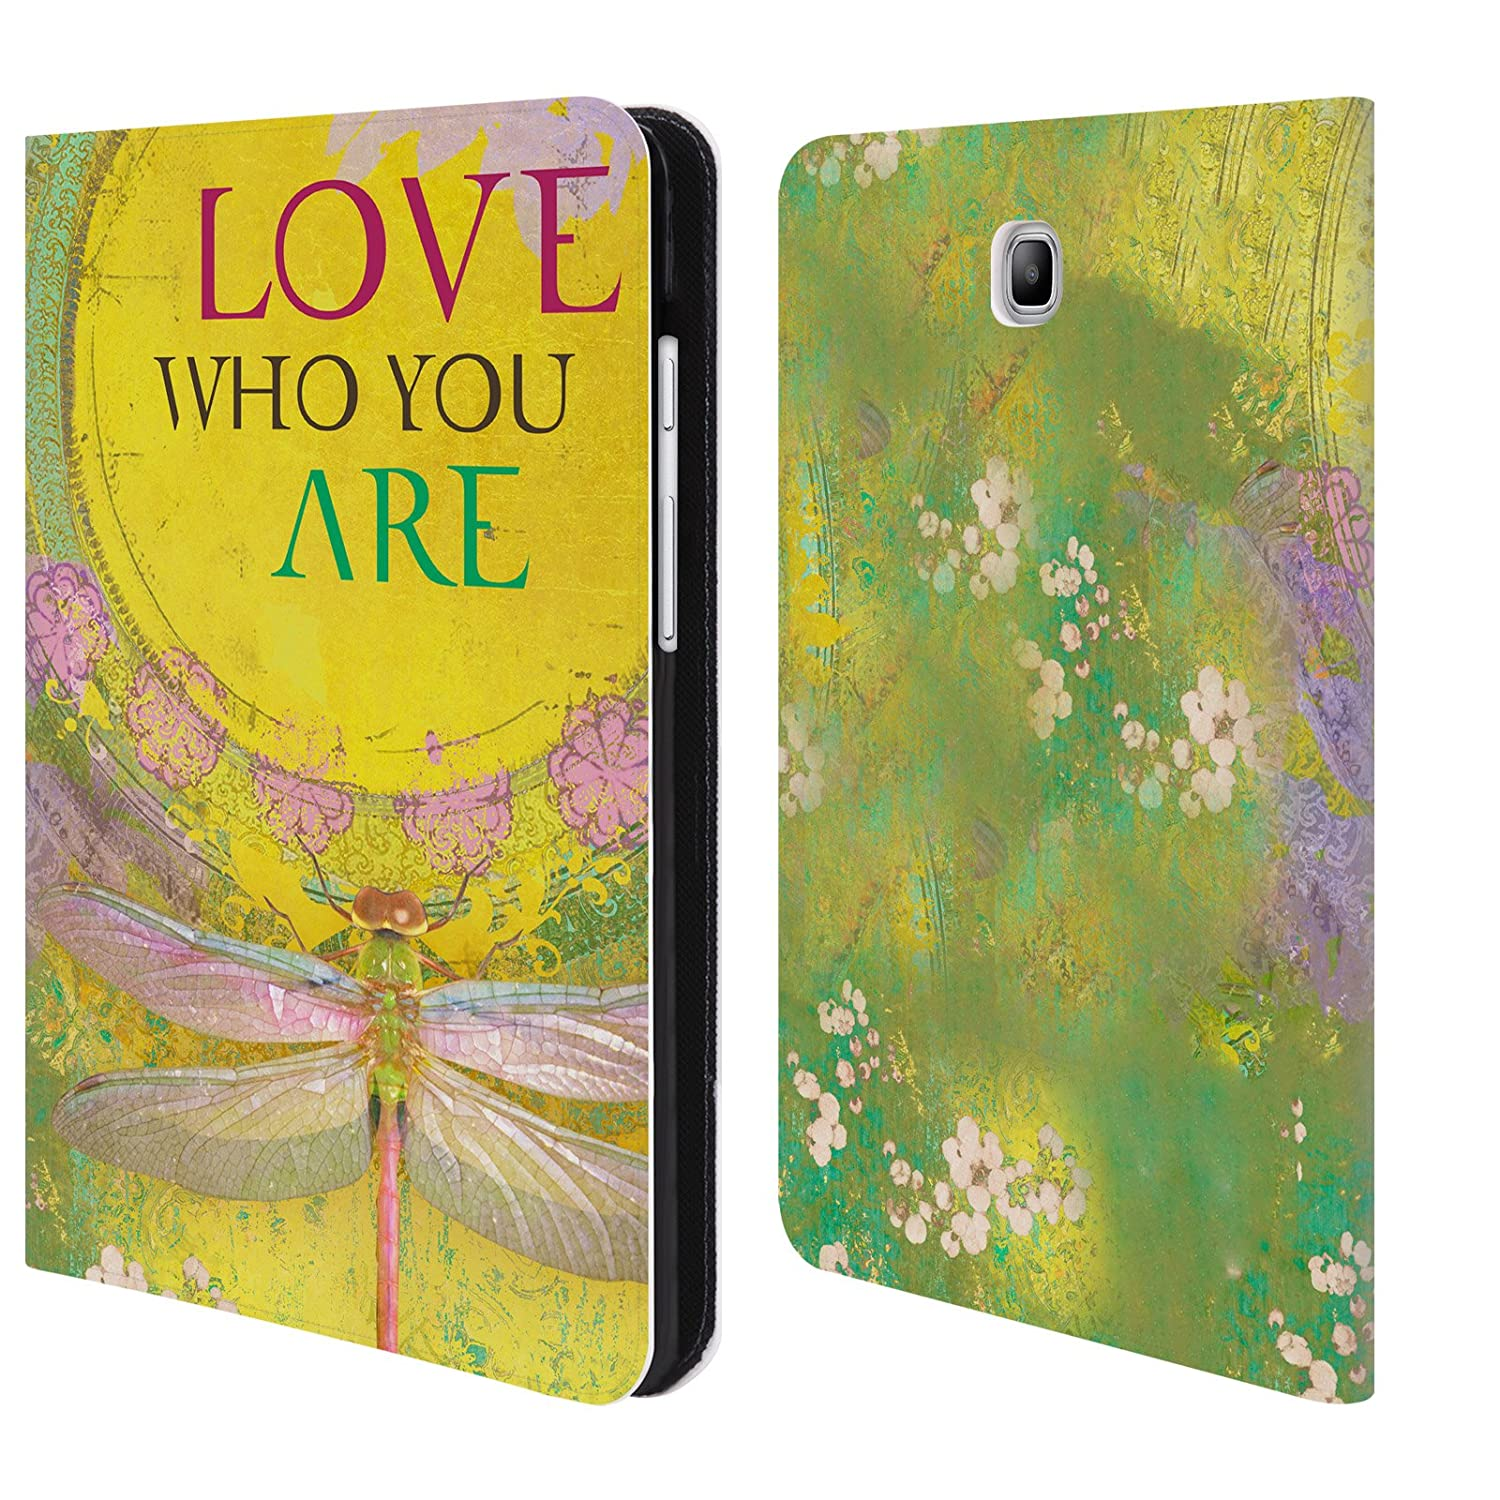 Official Duirwaigh Dragonfly 3 Insects Leather Book Wallet Case Cover For Samsung Galaxy Tab S2 9.7 Head Case Designs HLBWH-T810-DURWINS-LDRA3